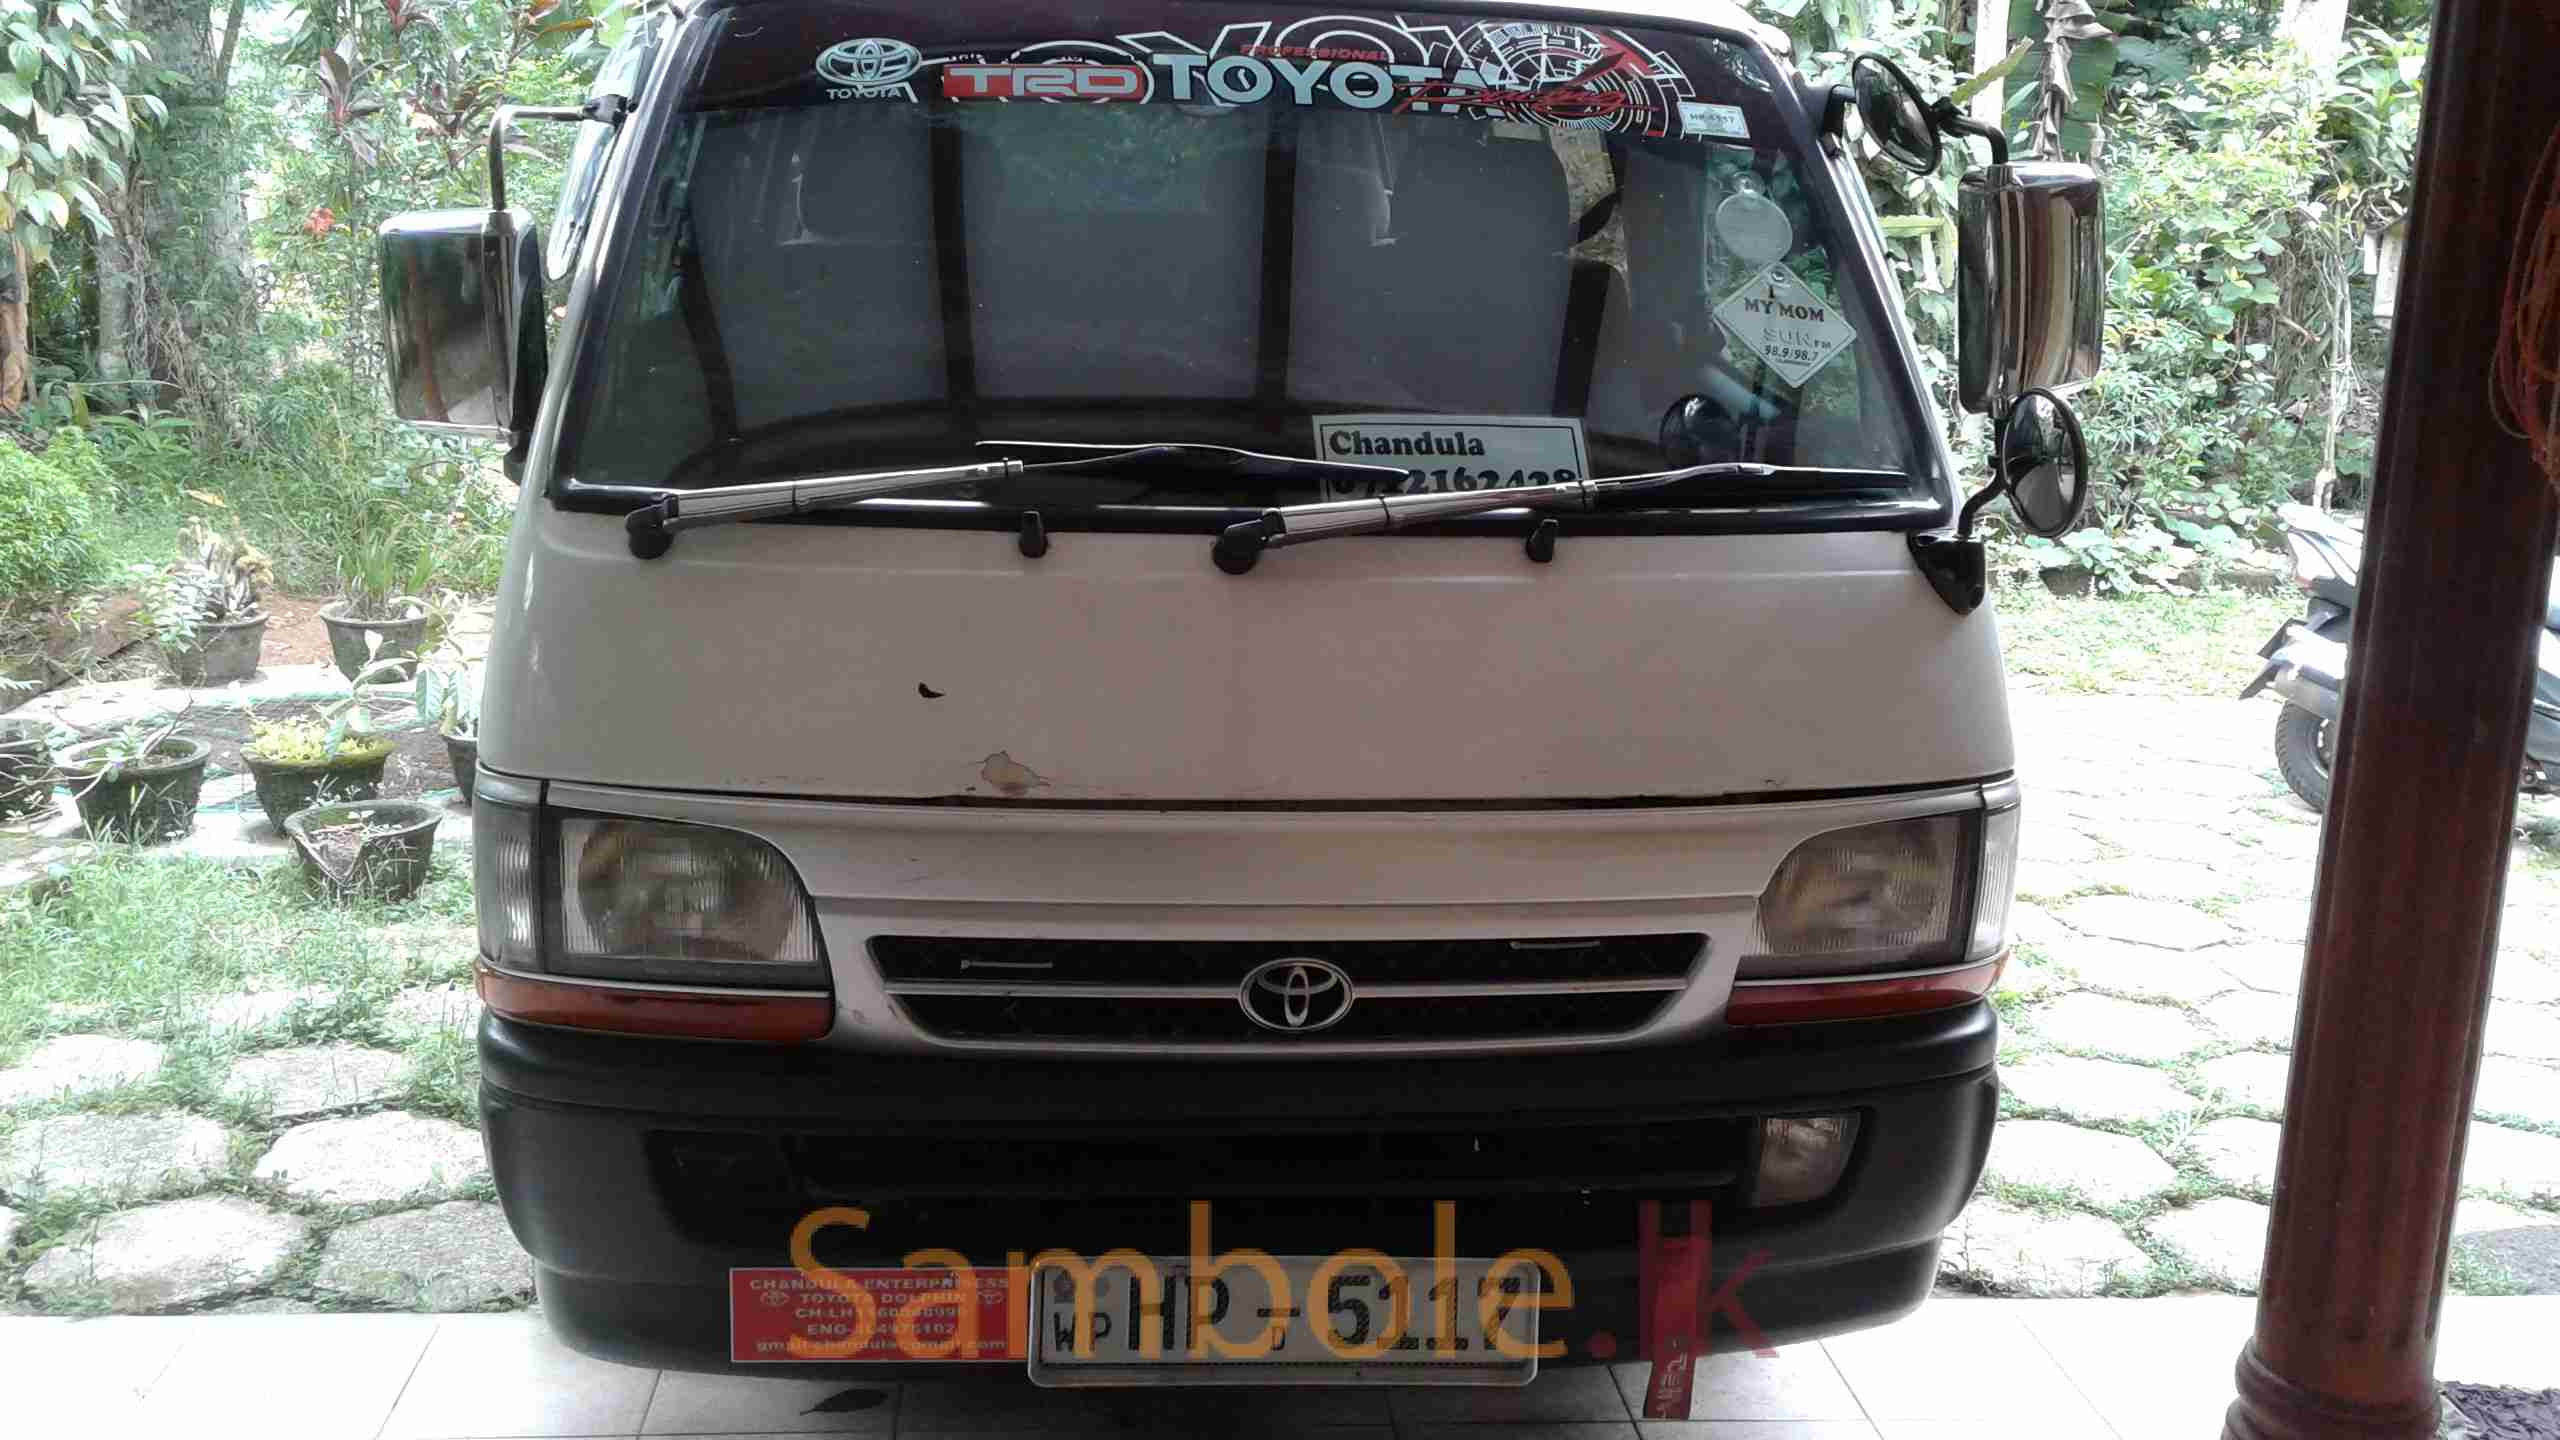 TOYOTA DOLPHIN 1998 - VAN FOR SALE - Sambole lk